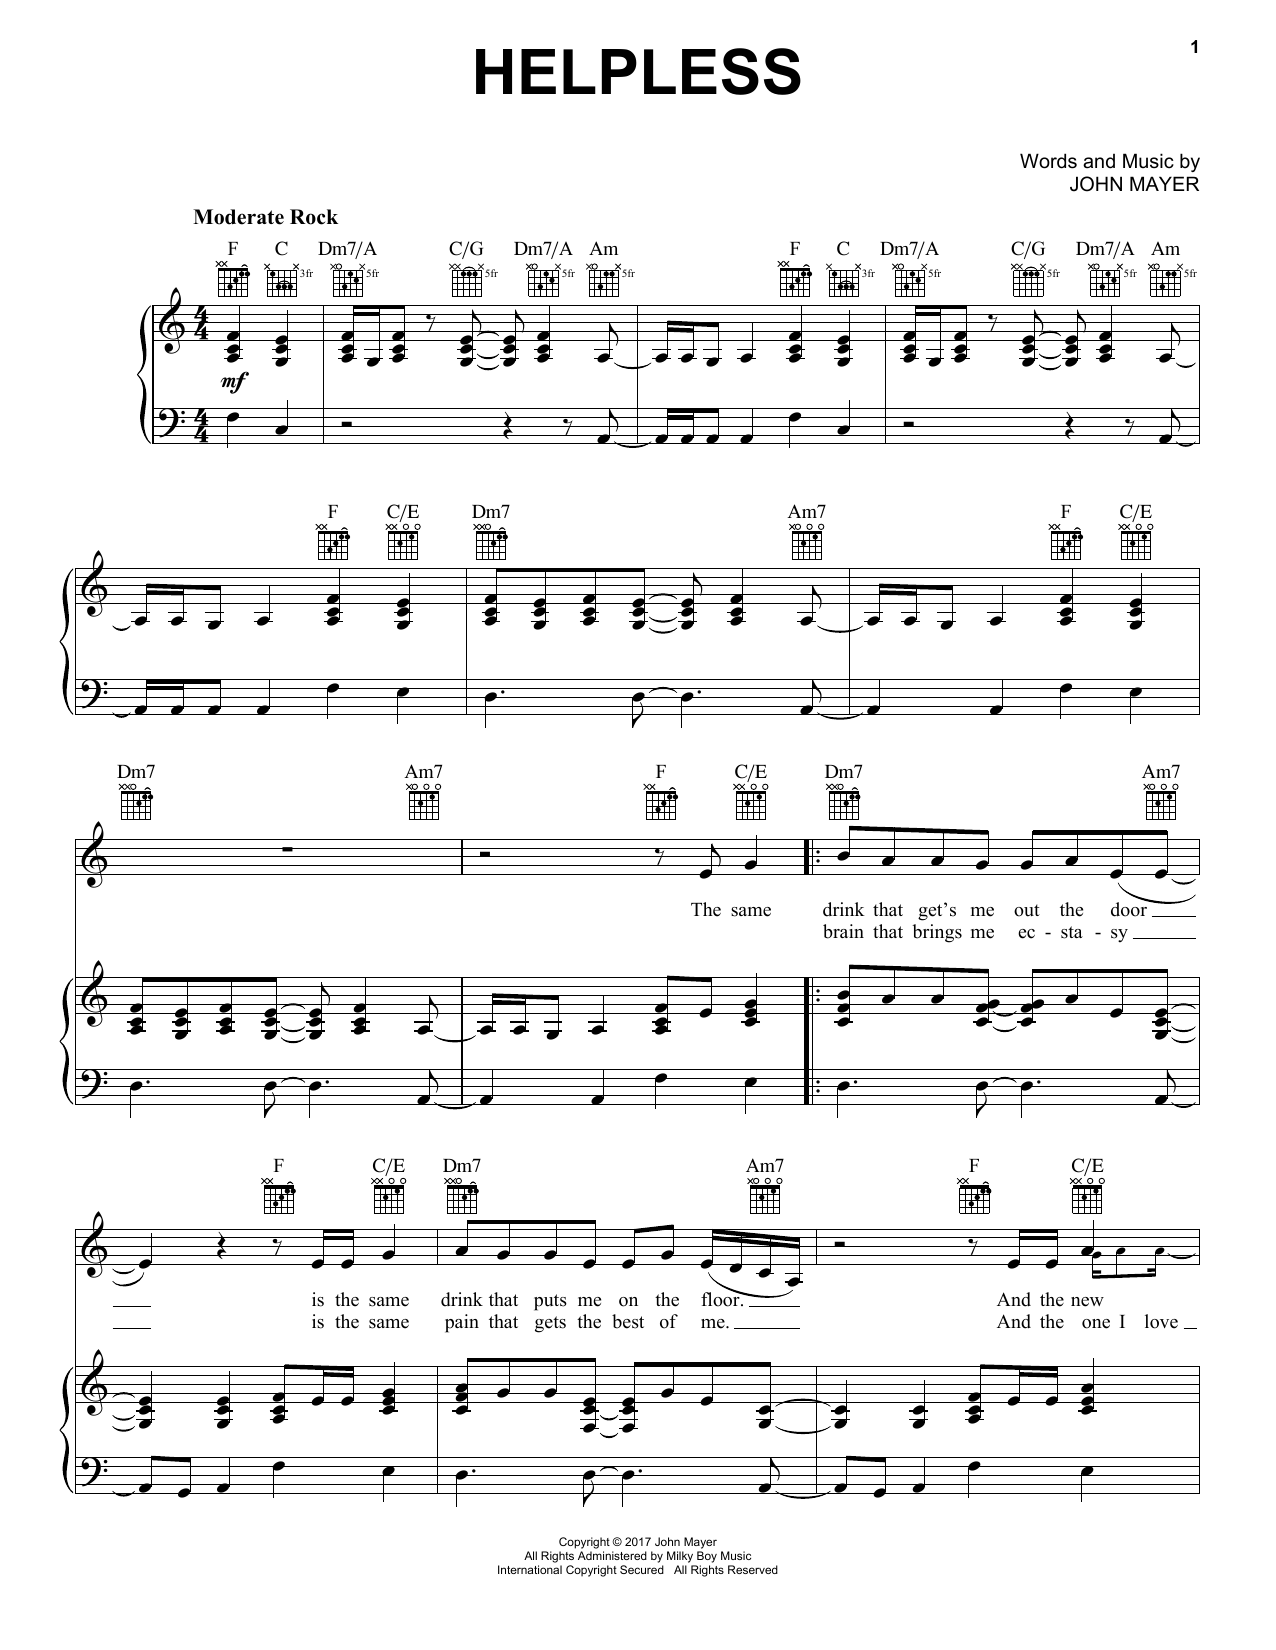 John Mayer Helpless sheet music notes and chords